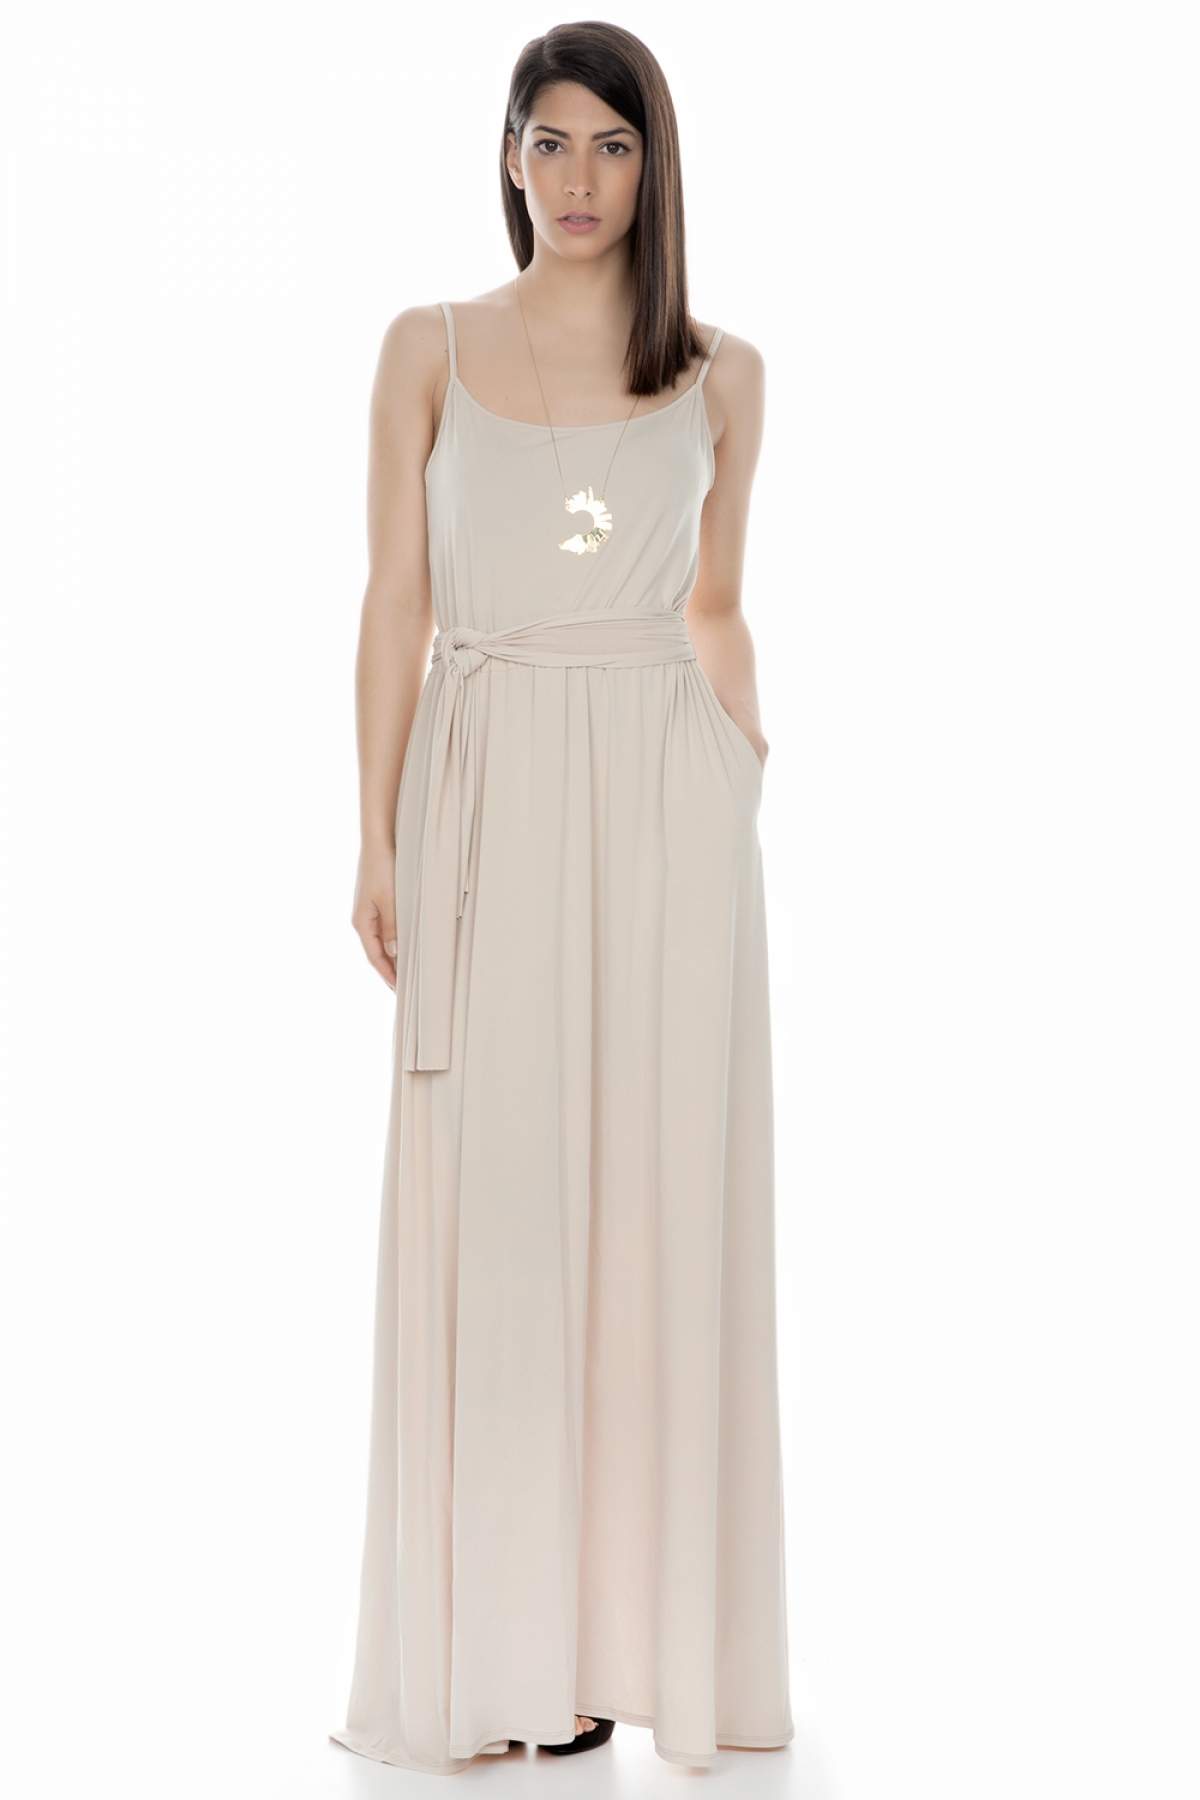 5af4d8c88a4 Beige Maxi Dress - Fashionnoiz